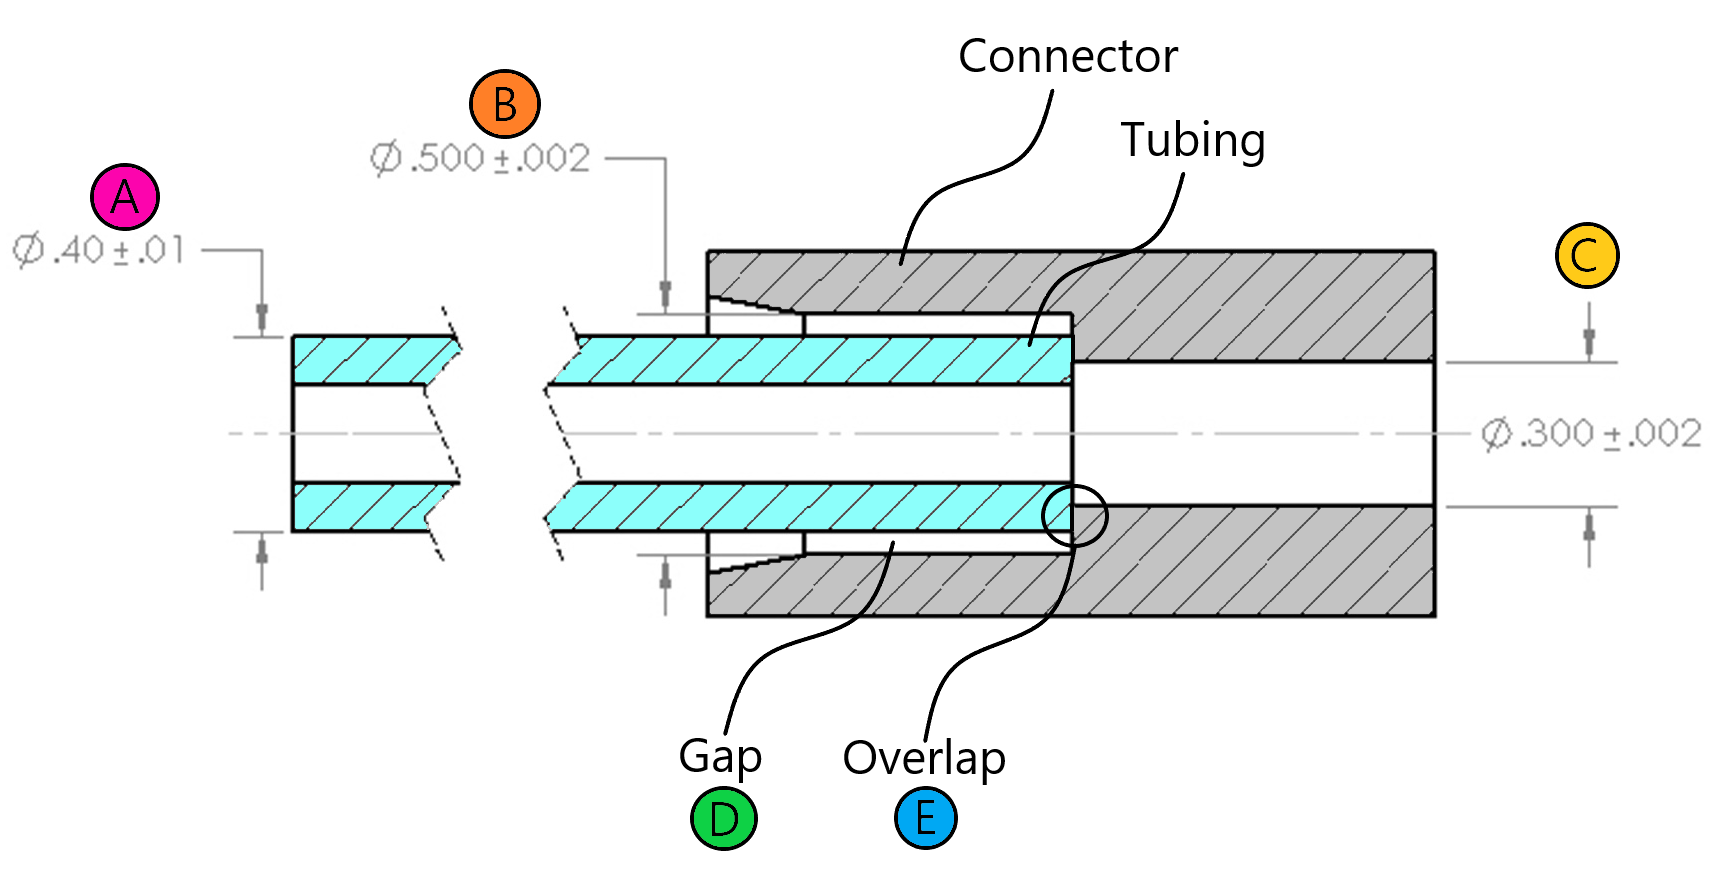 Tolerance Analysis Part, Tubing Connector